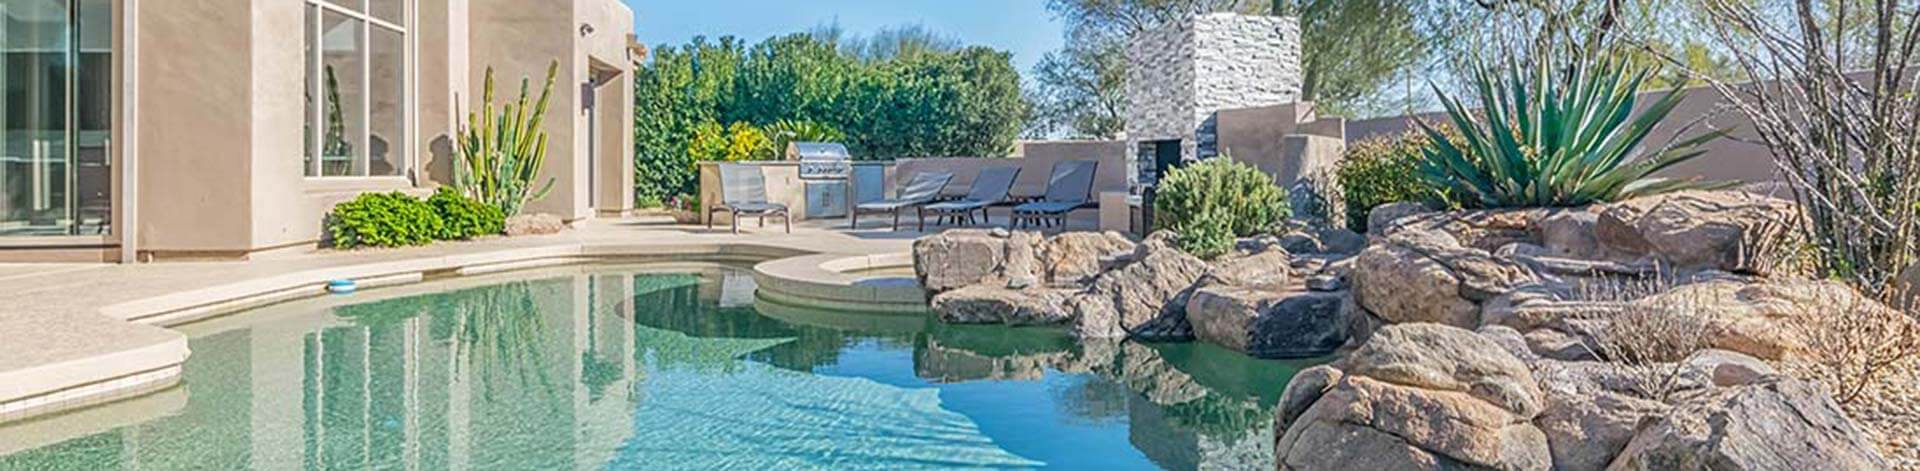 Outdoor Living Spaces In Arizona: Design Tips For Creating A Functional And  Relaxing Environment Republic